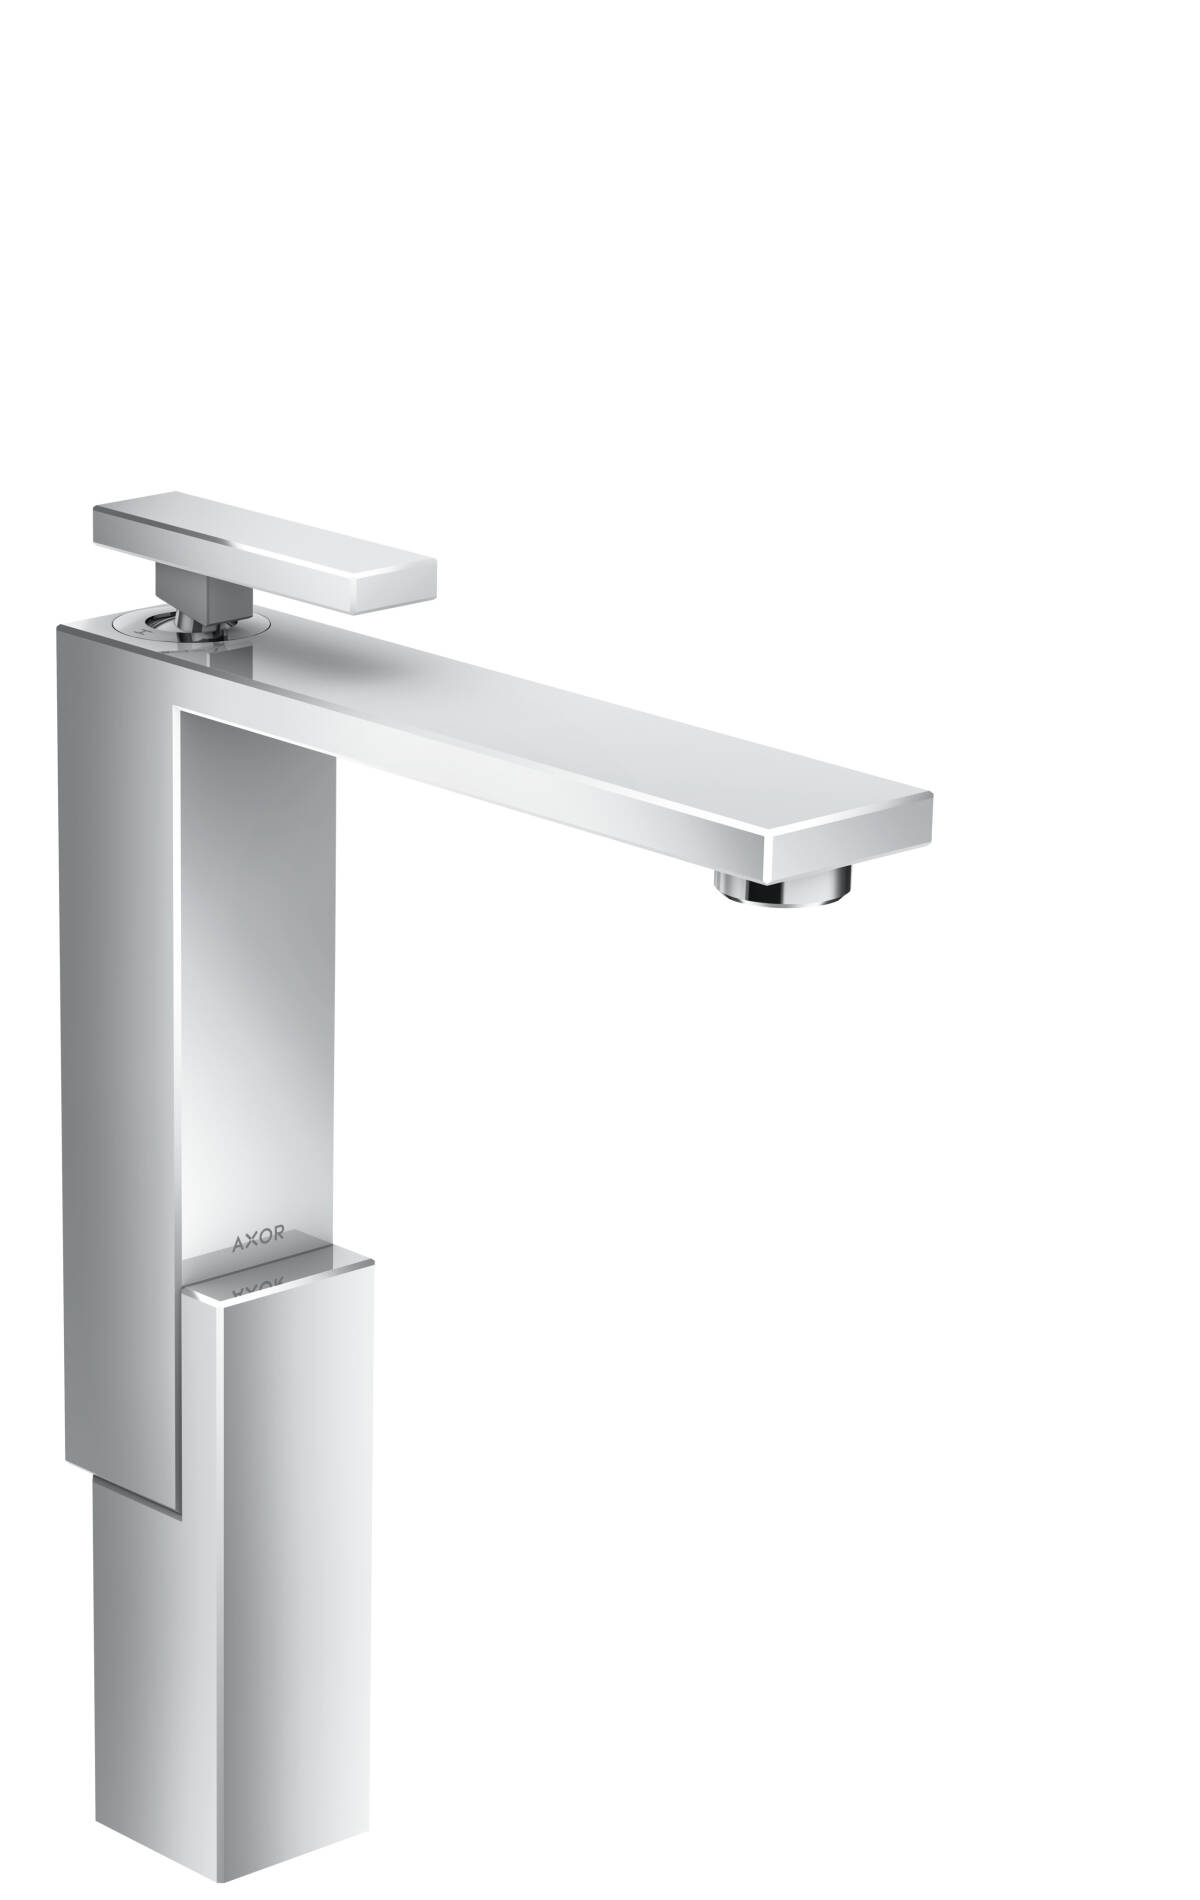 Single lever basin mixer 280 for wash bowls with push-open waste set, Chrome, 46030000